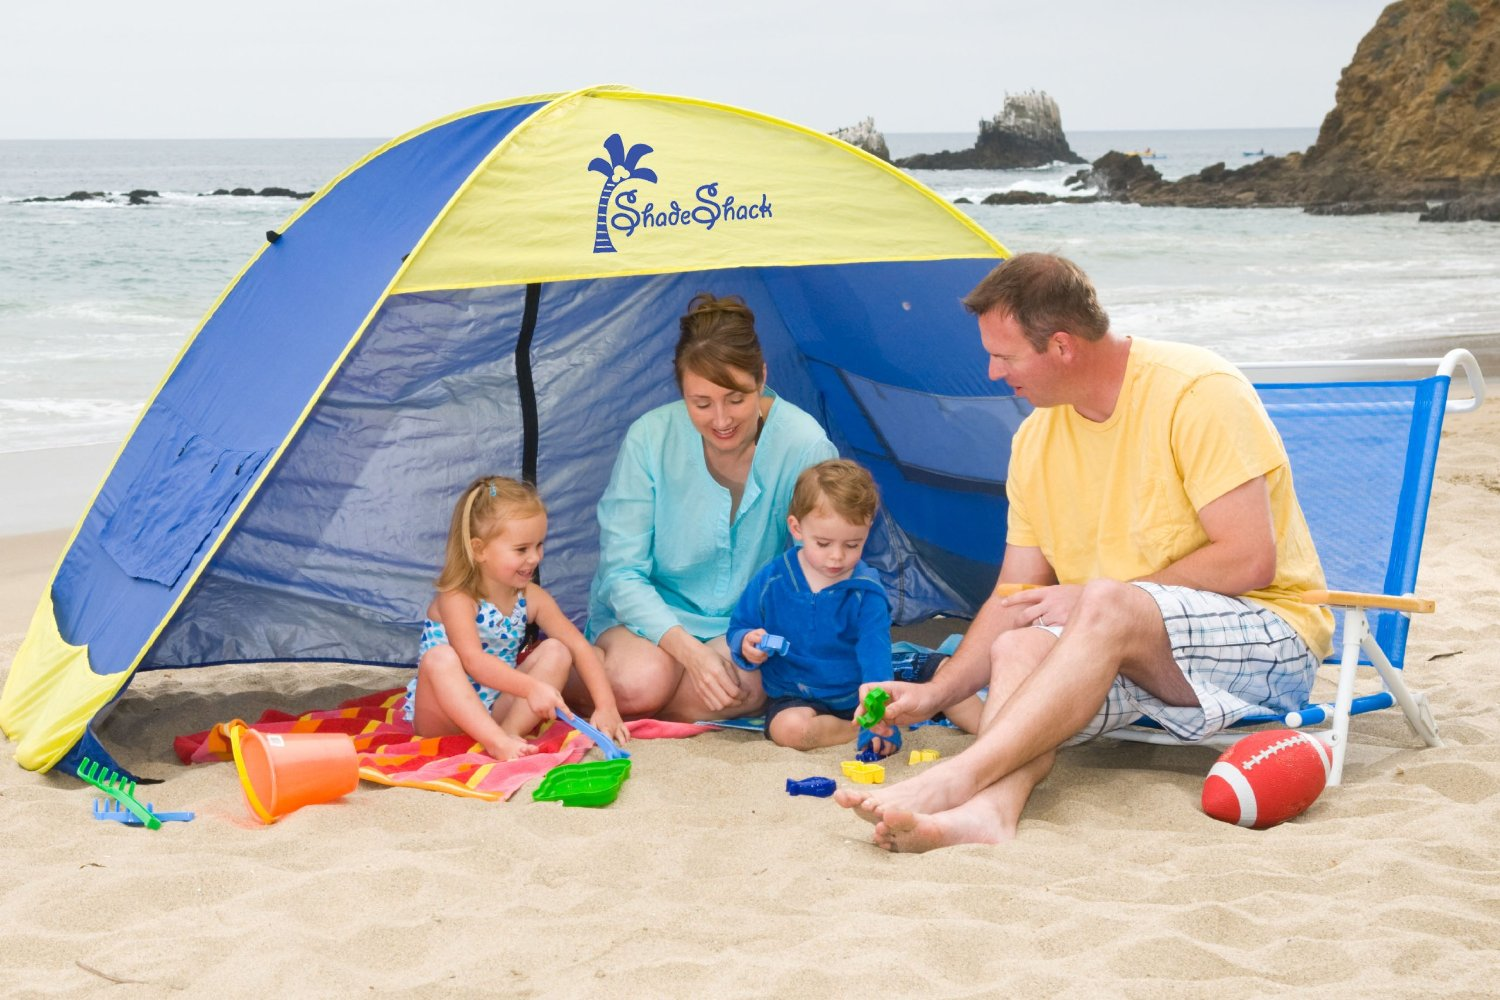 Shade Shack Pop-Up Tent & Pop-Up Tent Perfection: Lessons to Learn Before Family Beach Day